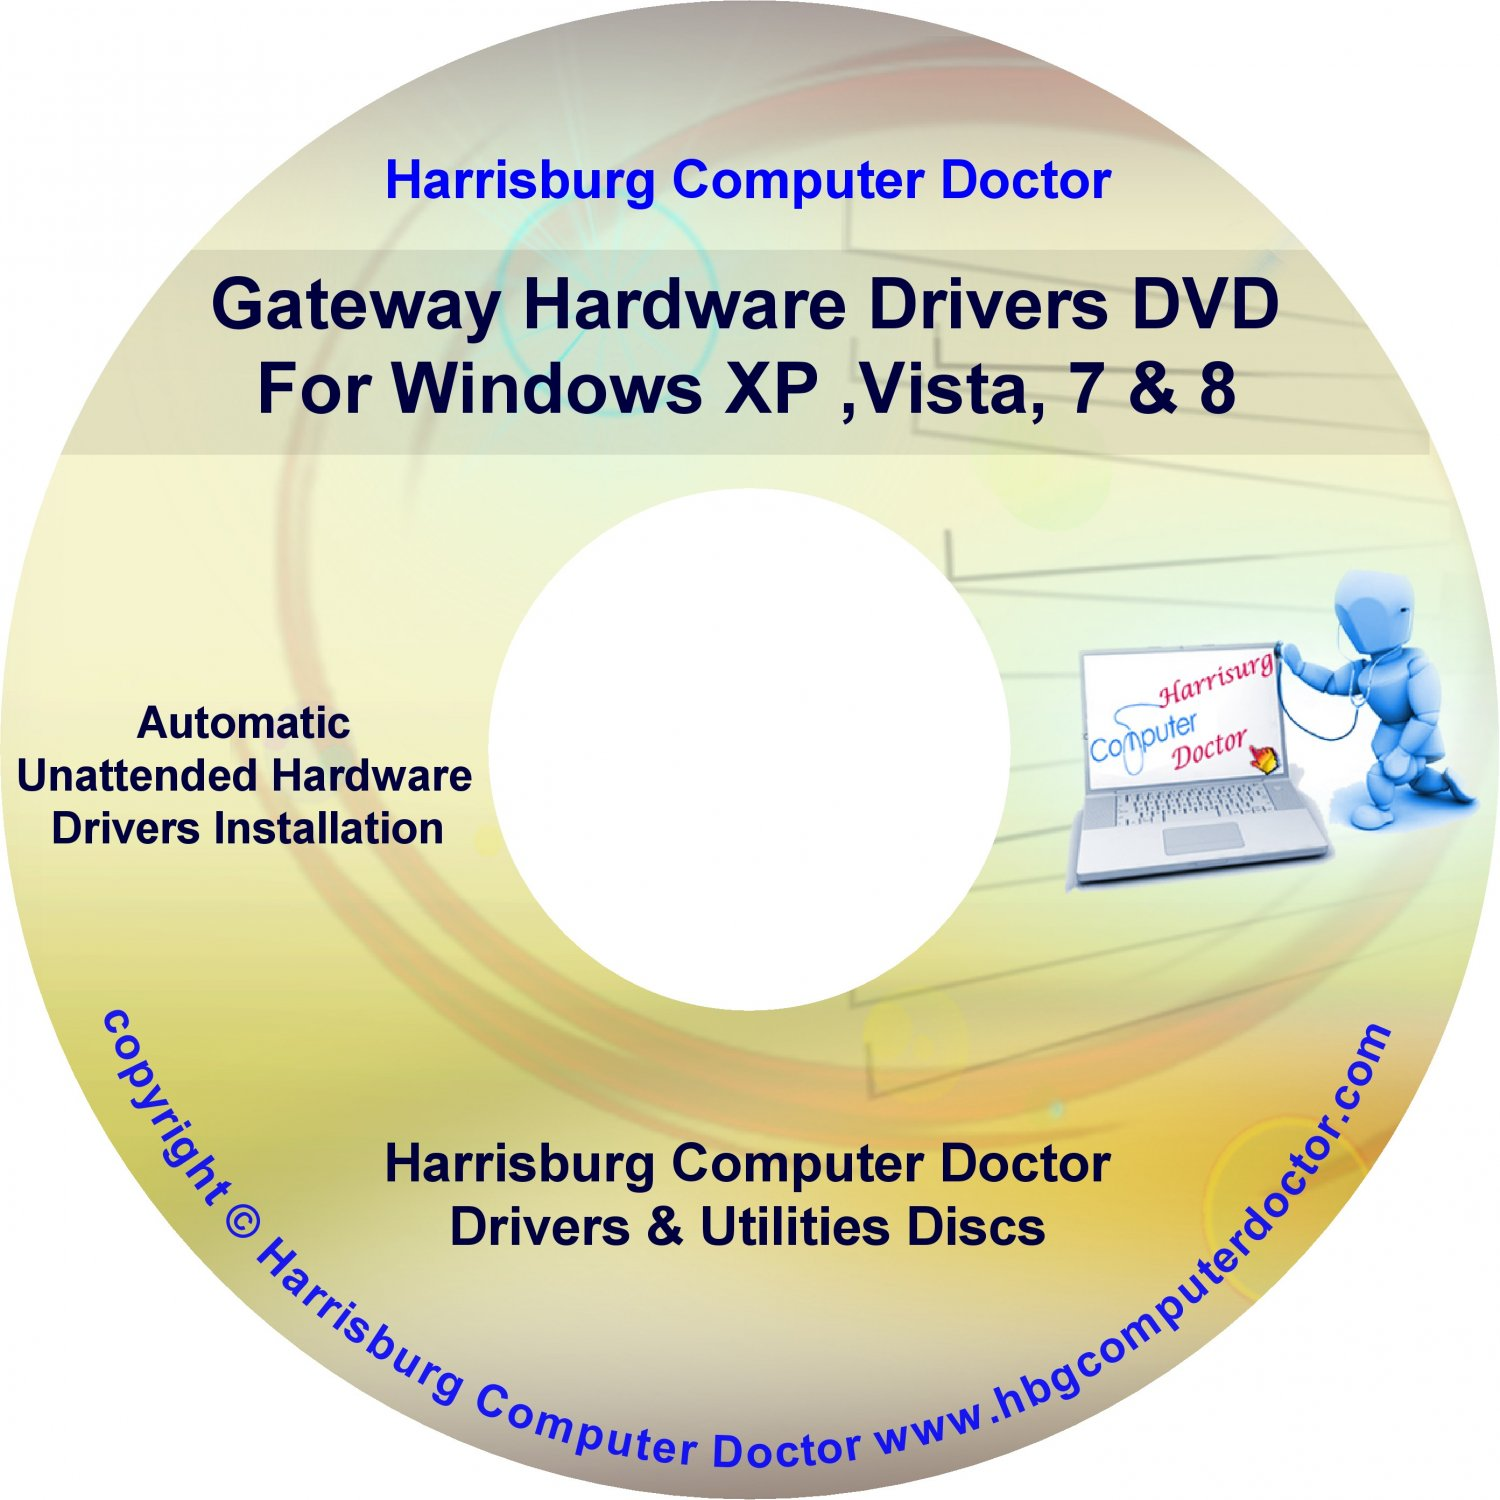 Gateway MX6935m Drivers DVD For Windows, XP, Vista, 7 & 8